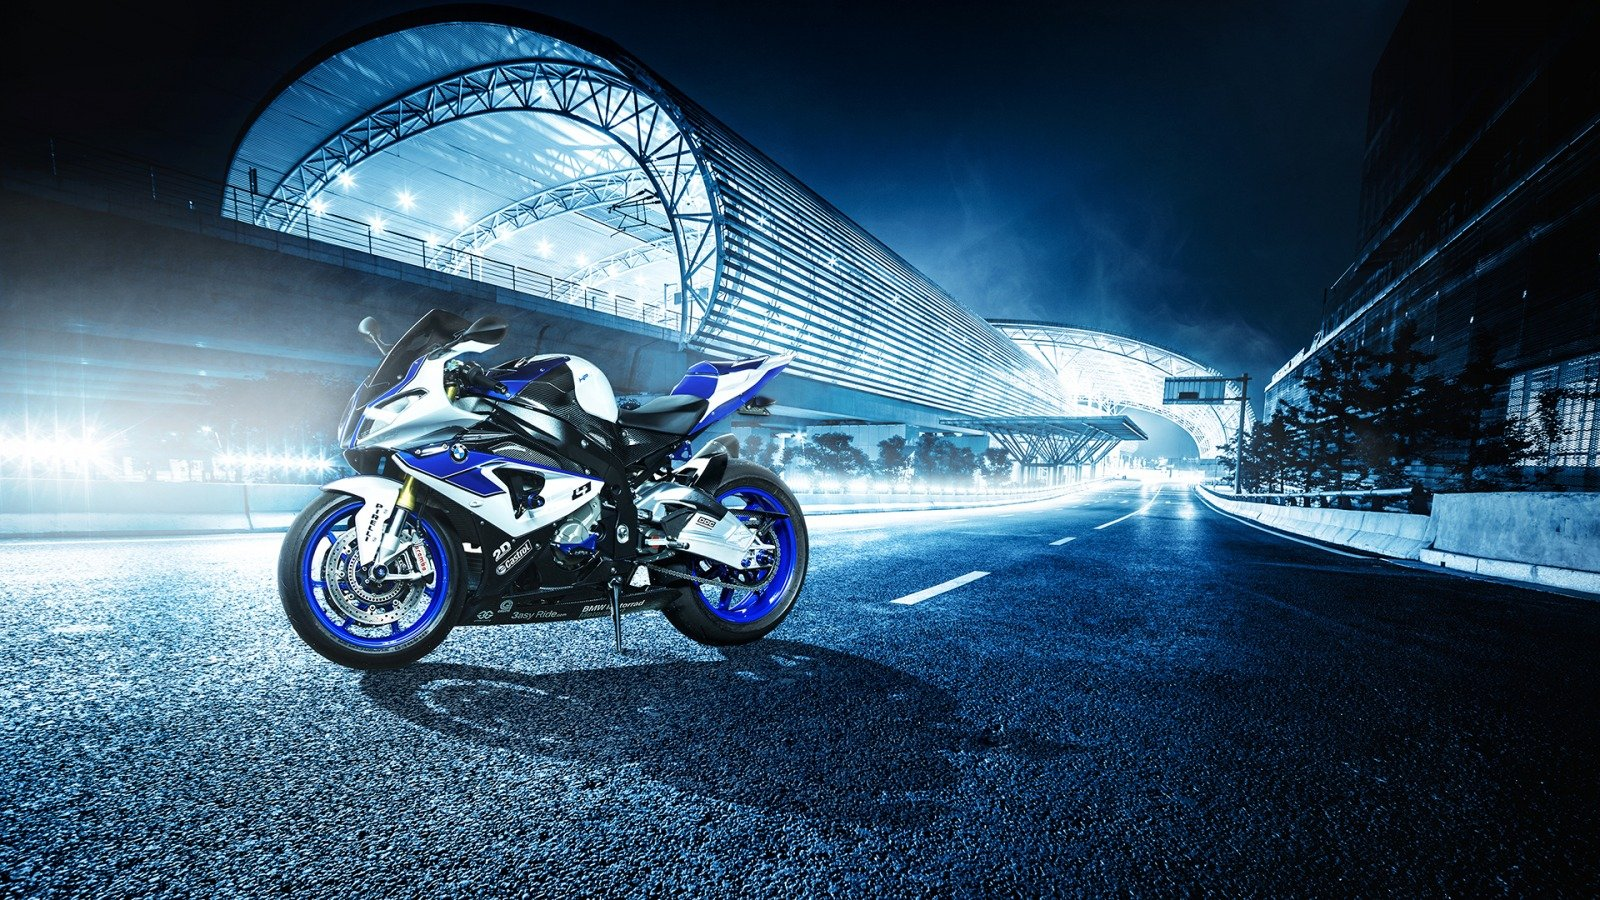 BMW HP4 Wallpaper 61261 1600x900px 1600x900